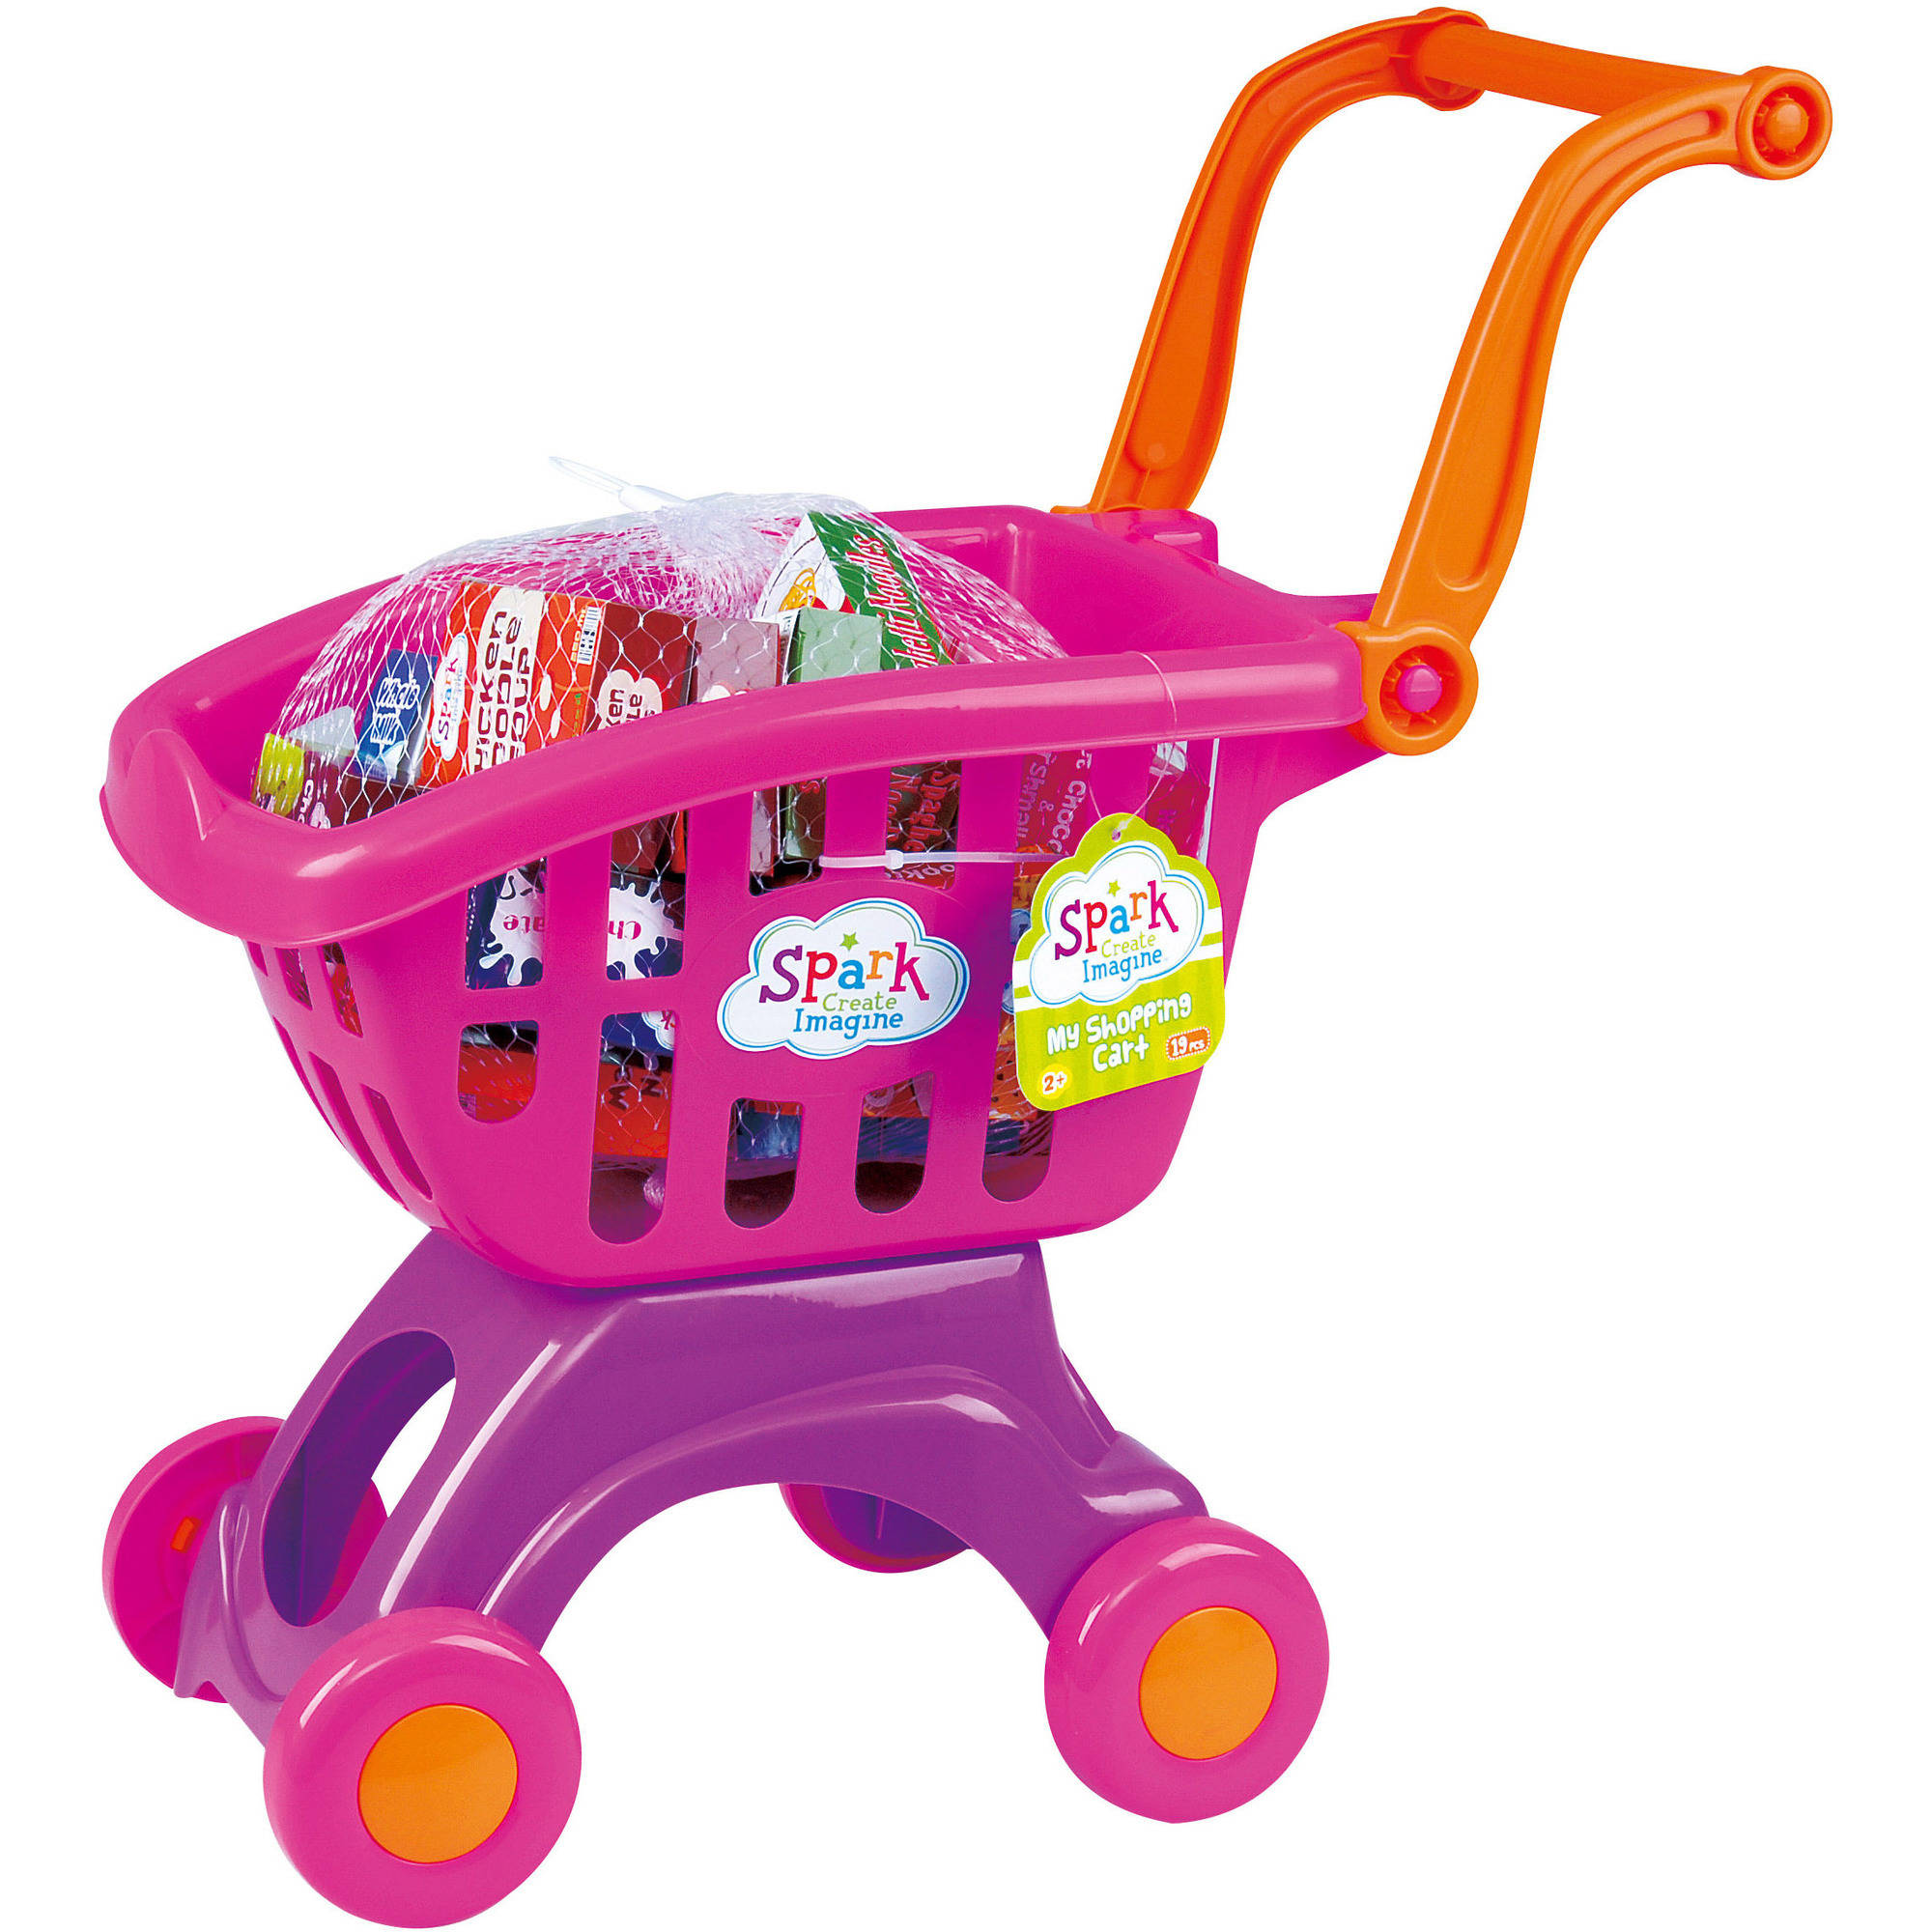 My Shopping Cart, 19 Pieces, Pink